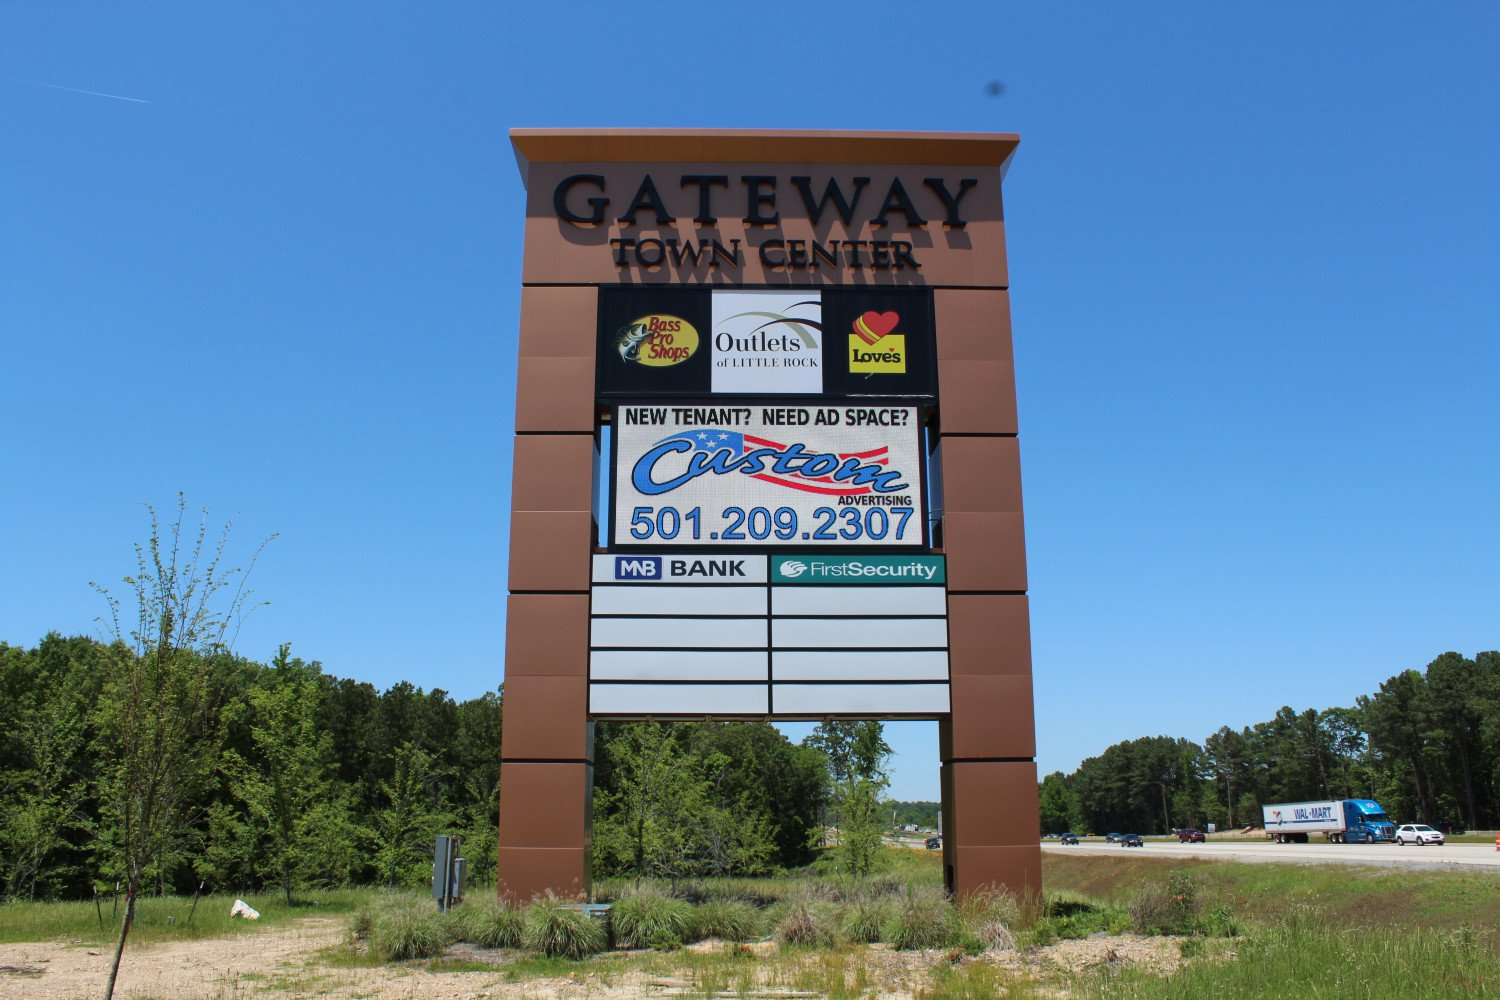 10'x20' 2 sided Watchfire Display located at Gateway Town Center Little Rock, Arkansas